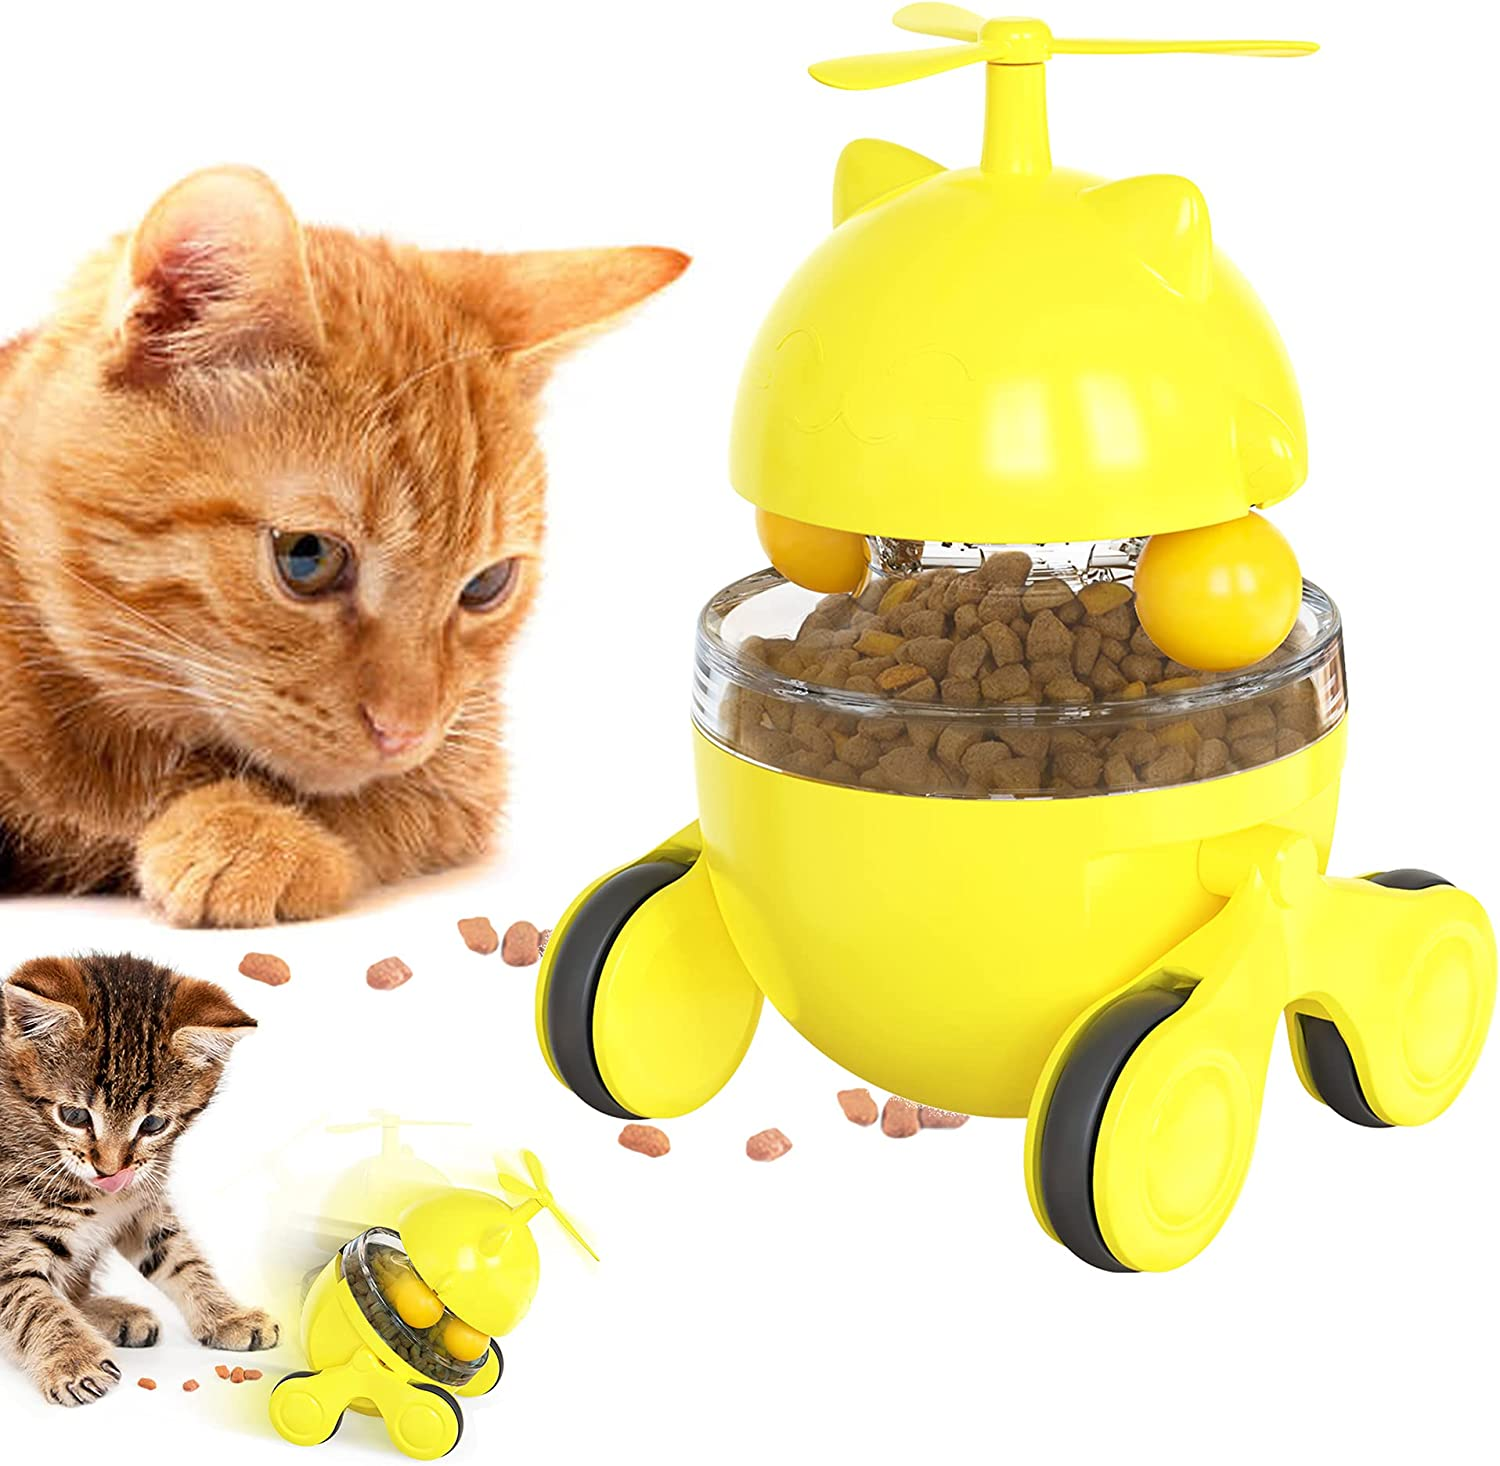 Cat Food Dispenser Treat Toys, Interactive Slow Feeder Pet Ball for Kitten with Tumbler Car Design, Funny Leaking Food Training and Relieve Anxiety, Reduce Boredom, Yellow